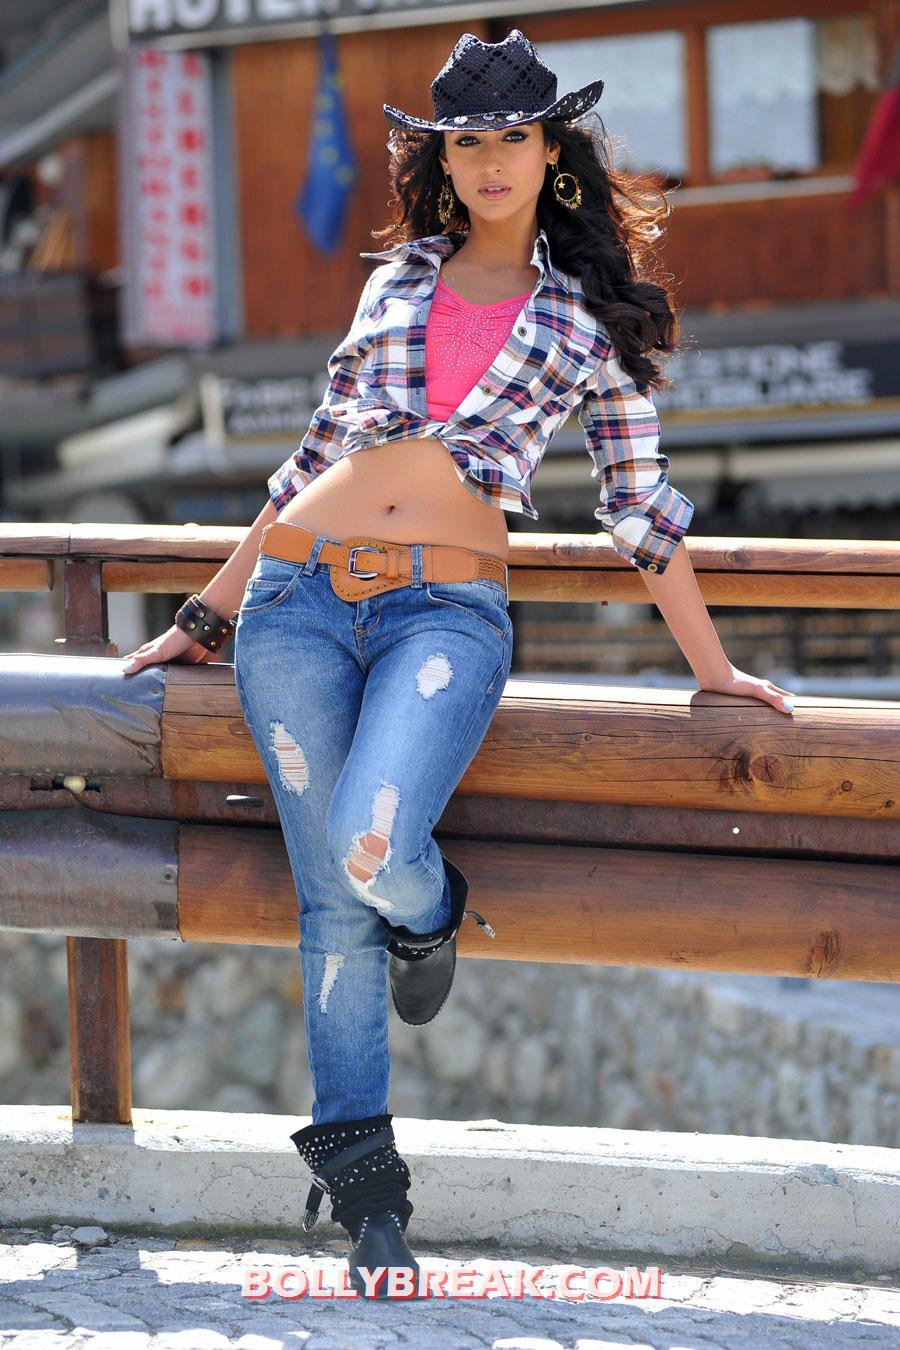 , Ileana D'cruz Hot Cowgirl Wallpaper - Navel Show